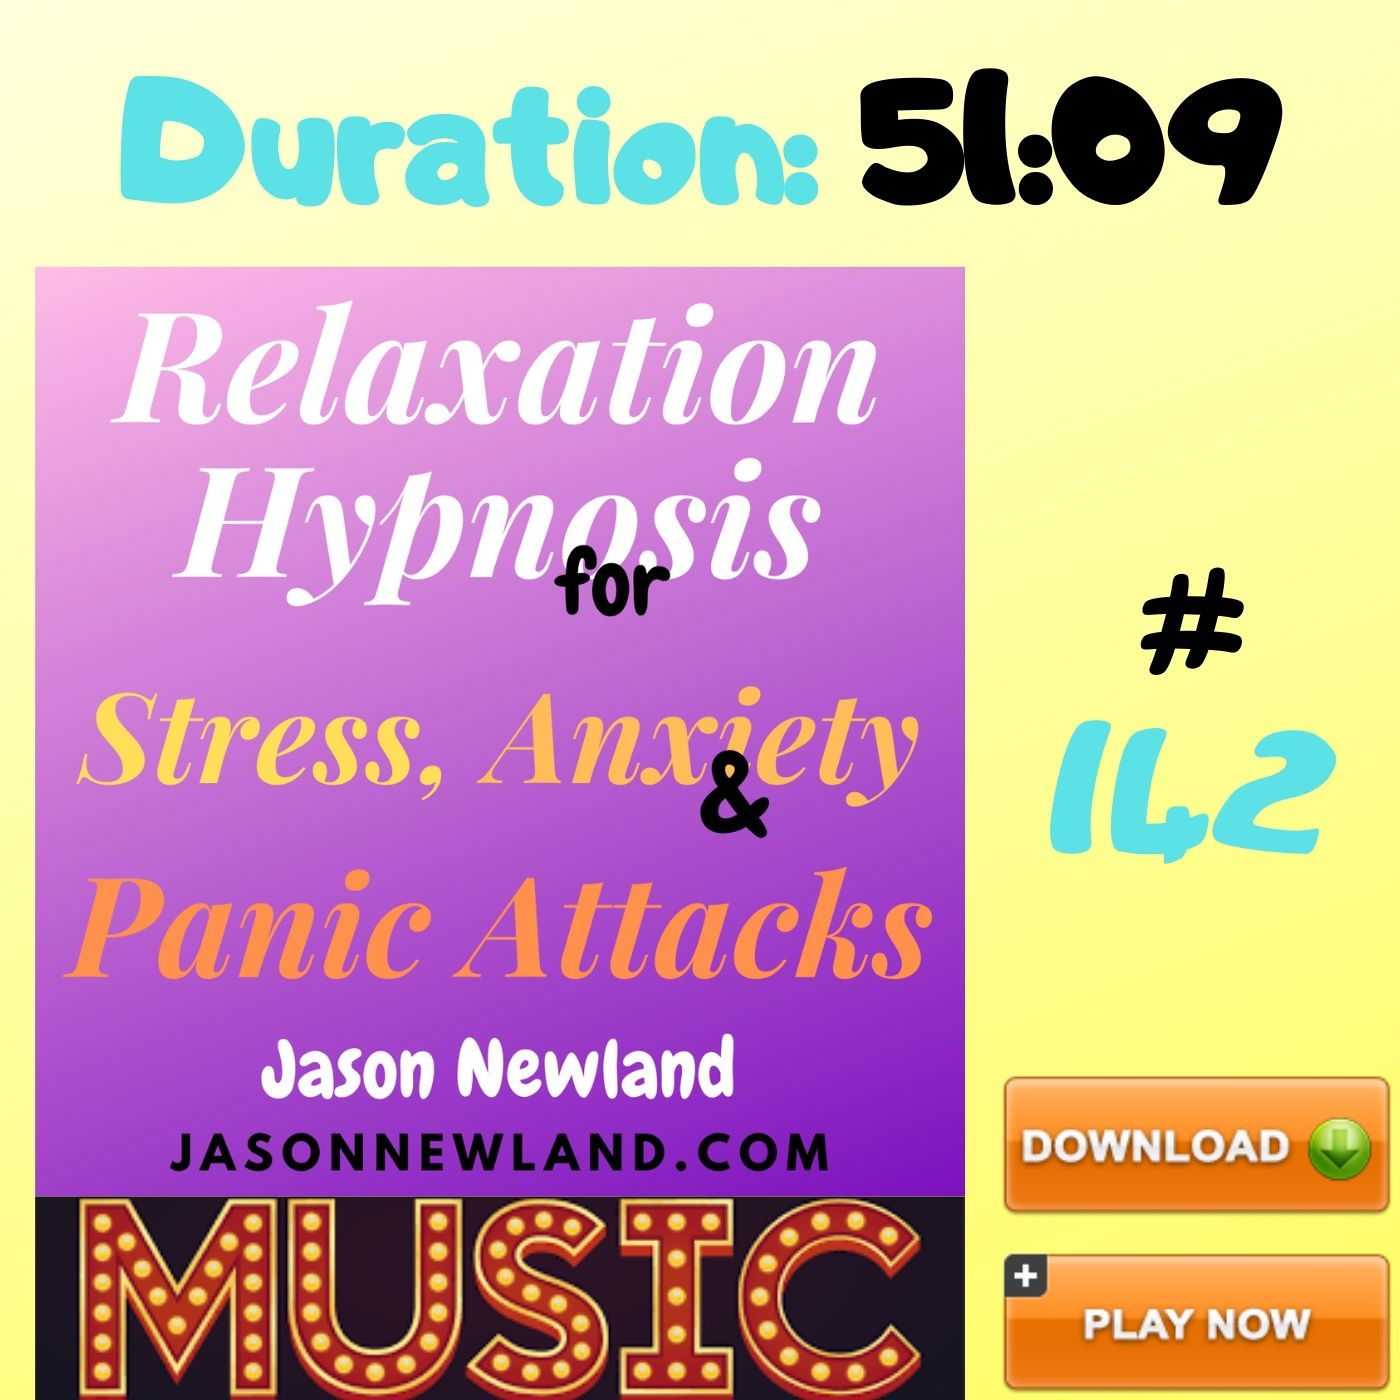 "#142 Relaxation Hypnosis for Stress, Anxiety & Panic Attacks - ""AMAZING, LOVED & DEEPLY RELAXED"" (Jason Newland) (28th May 2020) with MUSIC"